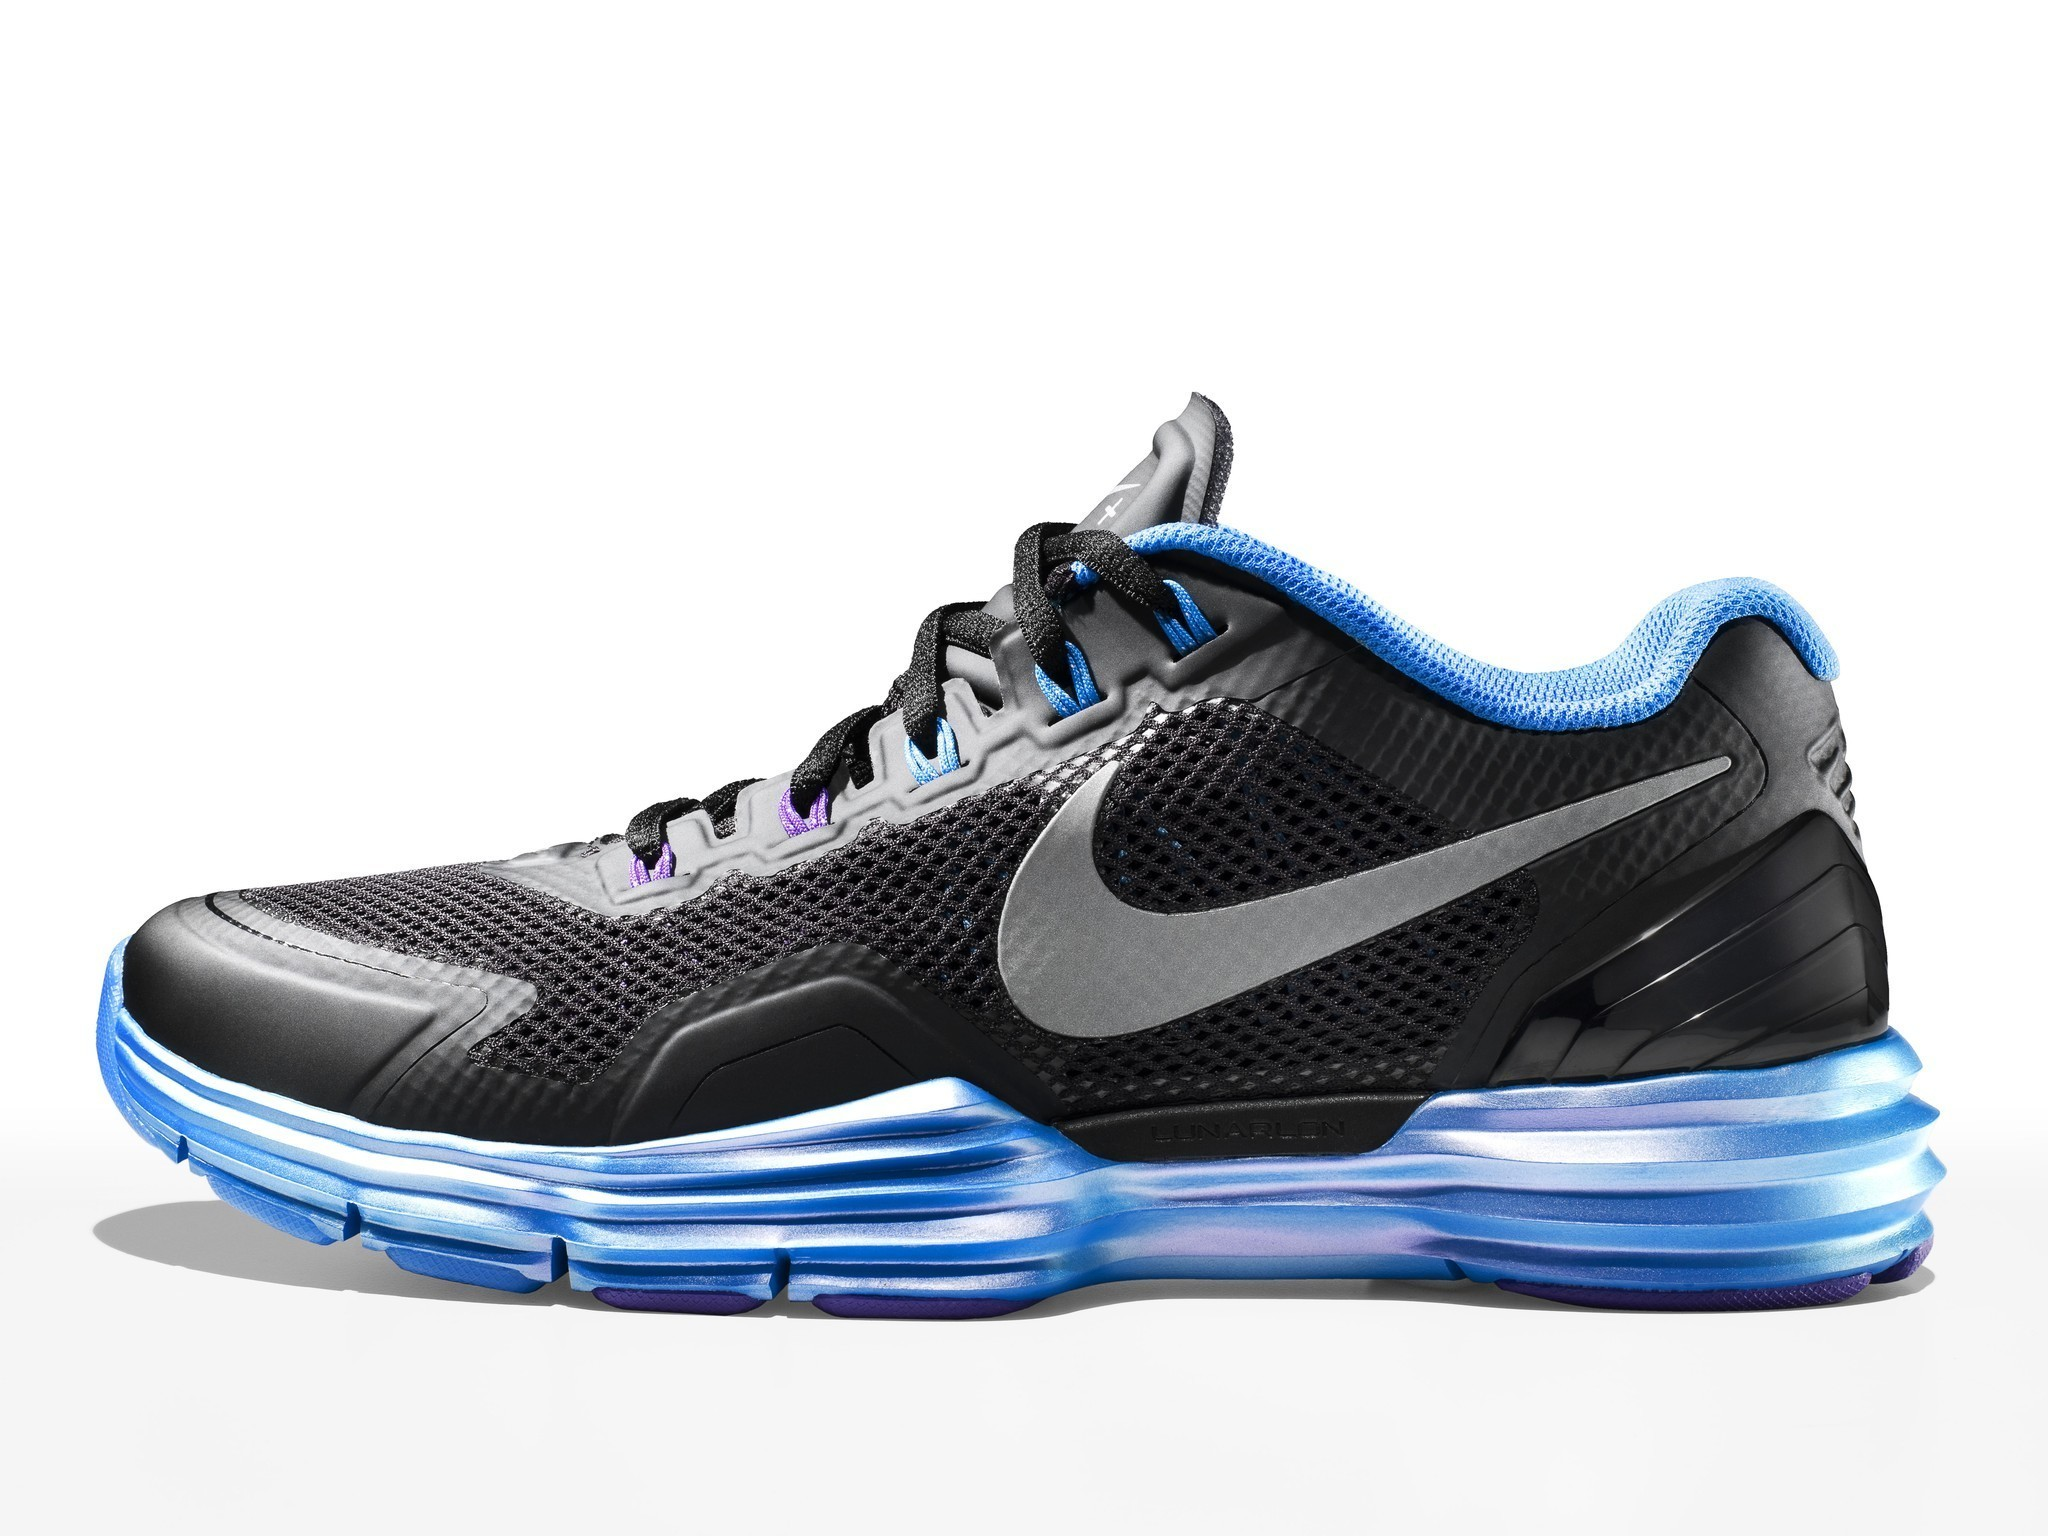 199b03b43ac9 New Nike shoes not only feel the burn